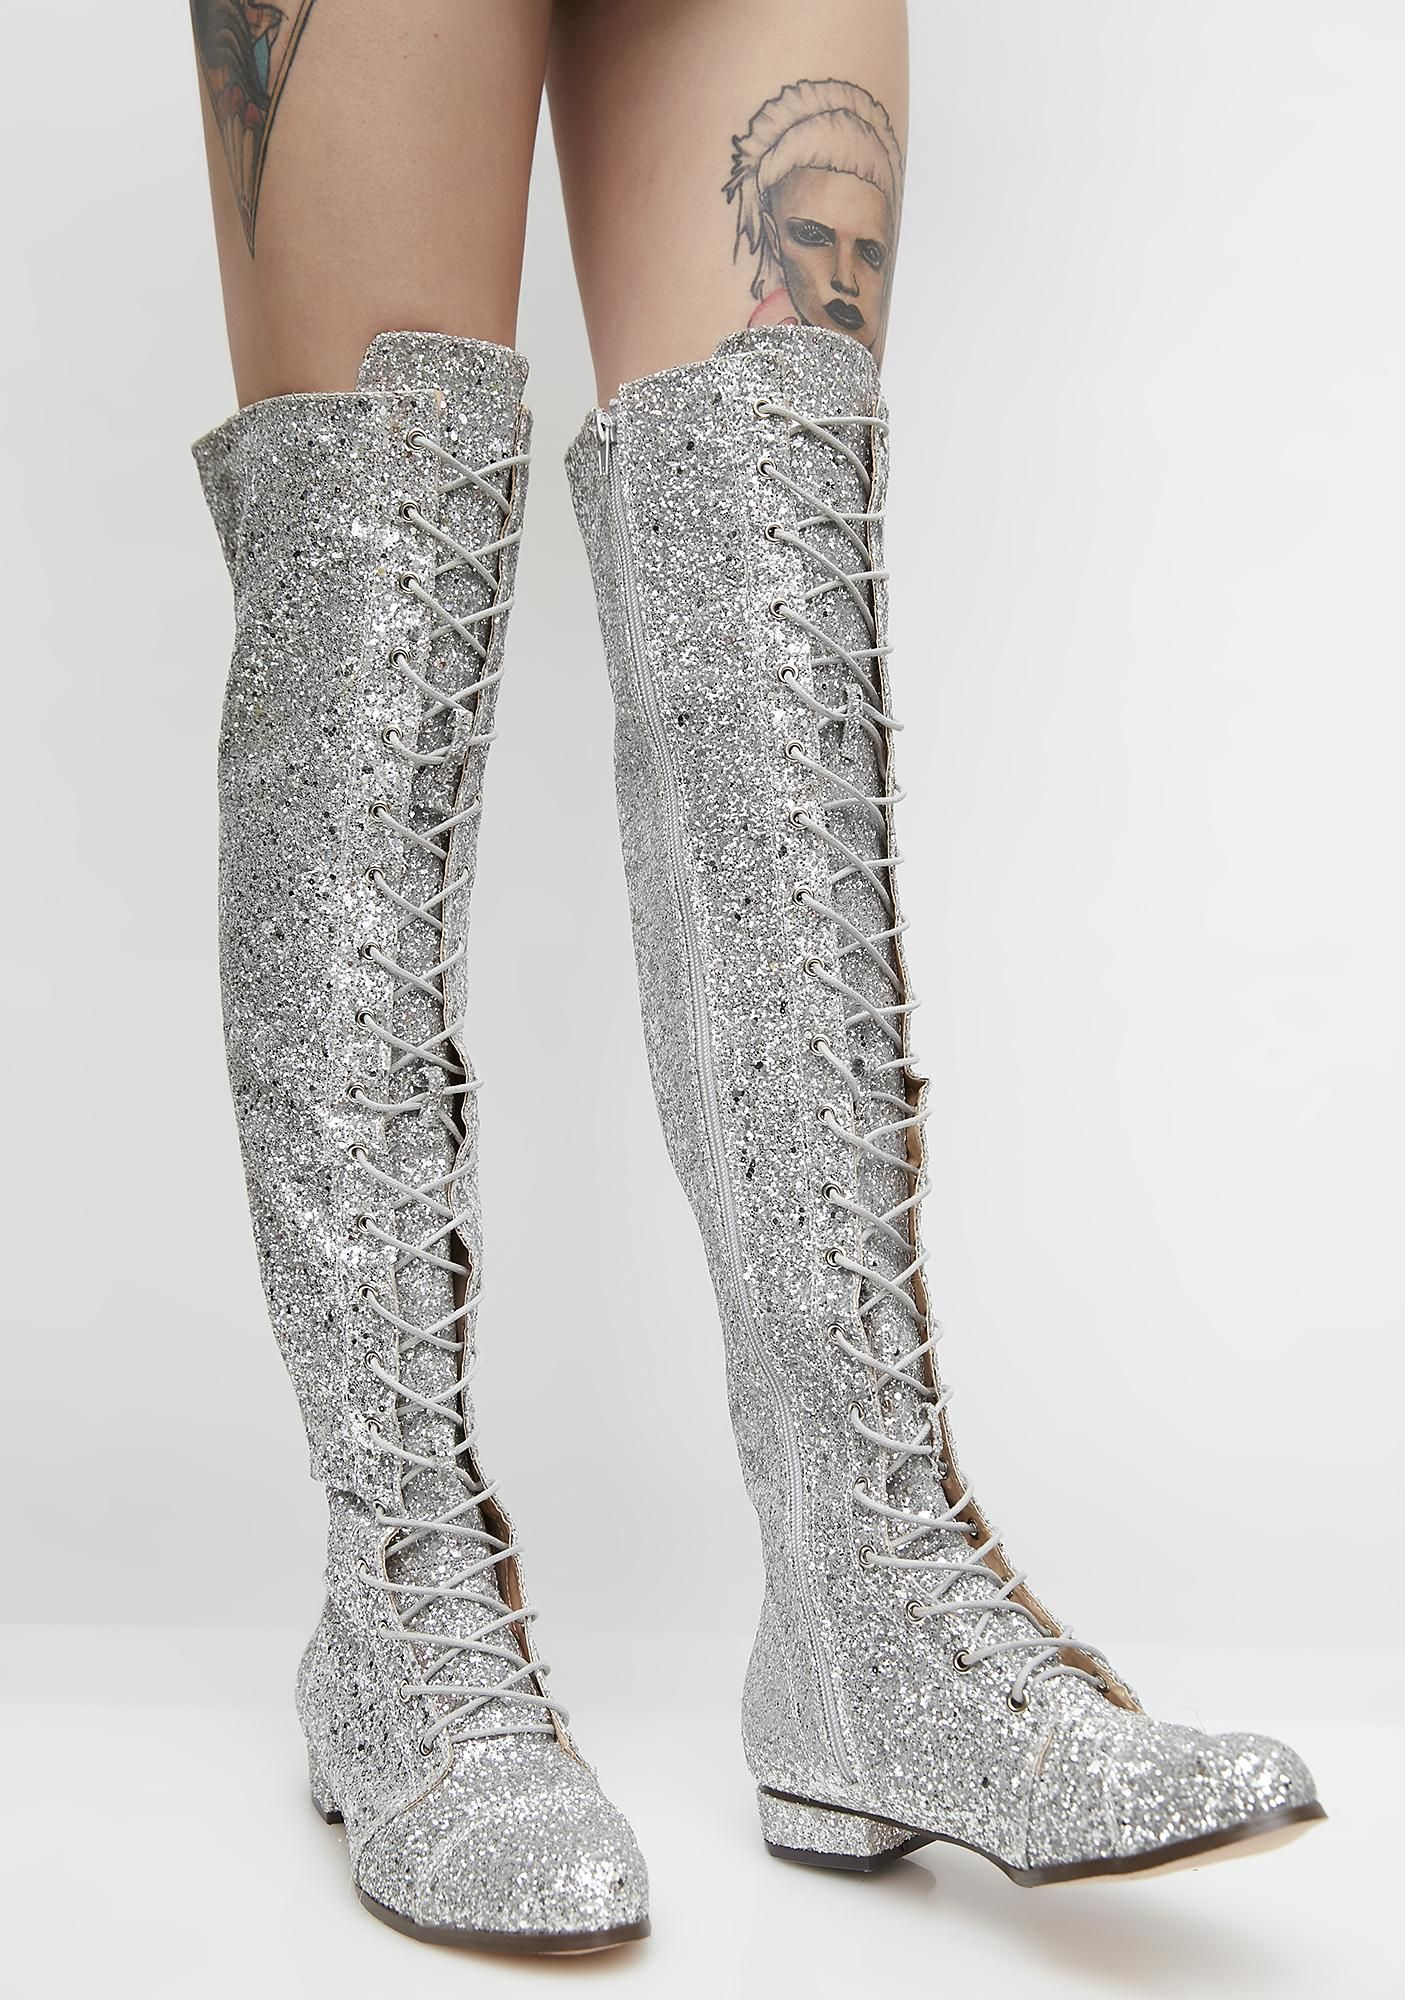 91a5f53a74f8 Glitter Take  Em Down Lace-Up Boots cuz you know you re deadly. These  sparkly silver knee-high boots have lace-ups on the front and inside zipper  closures.